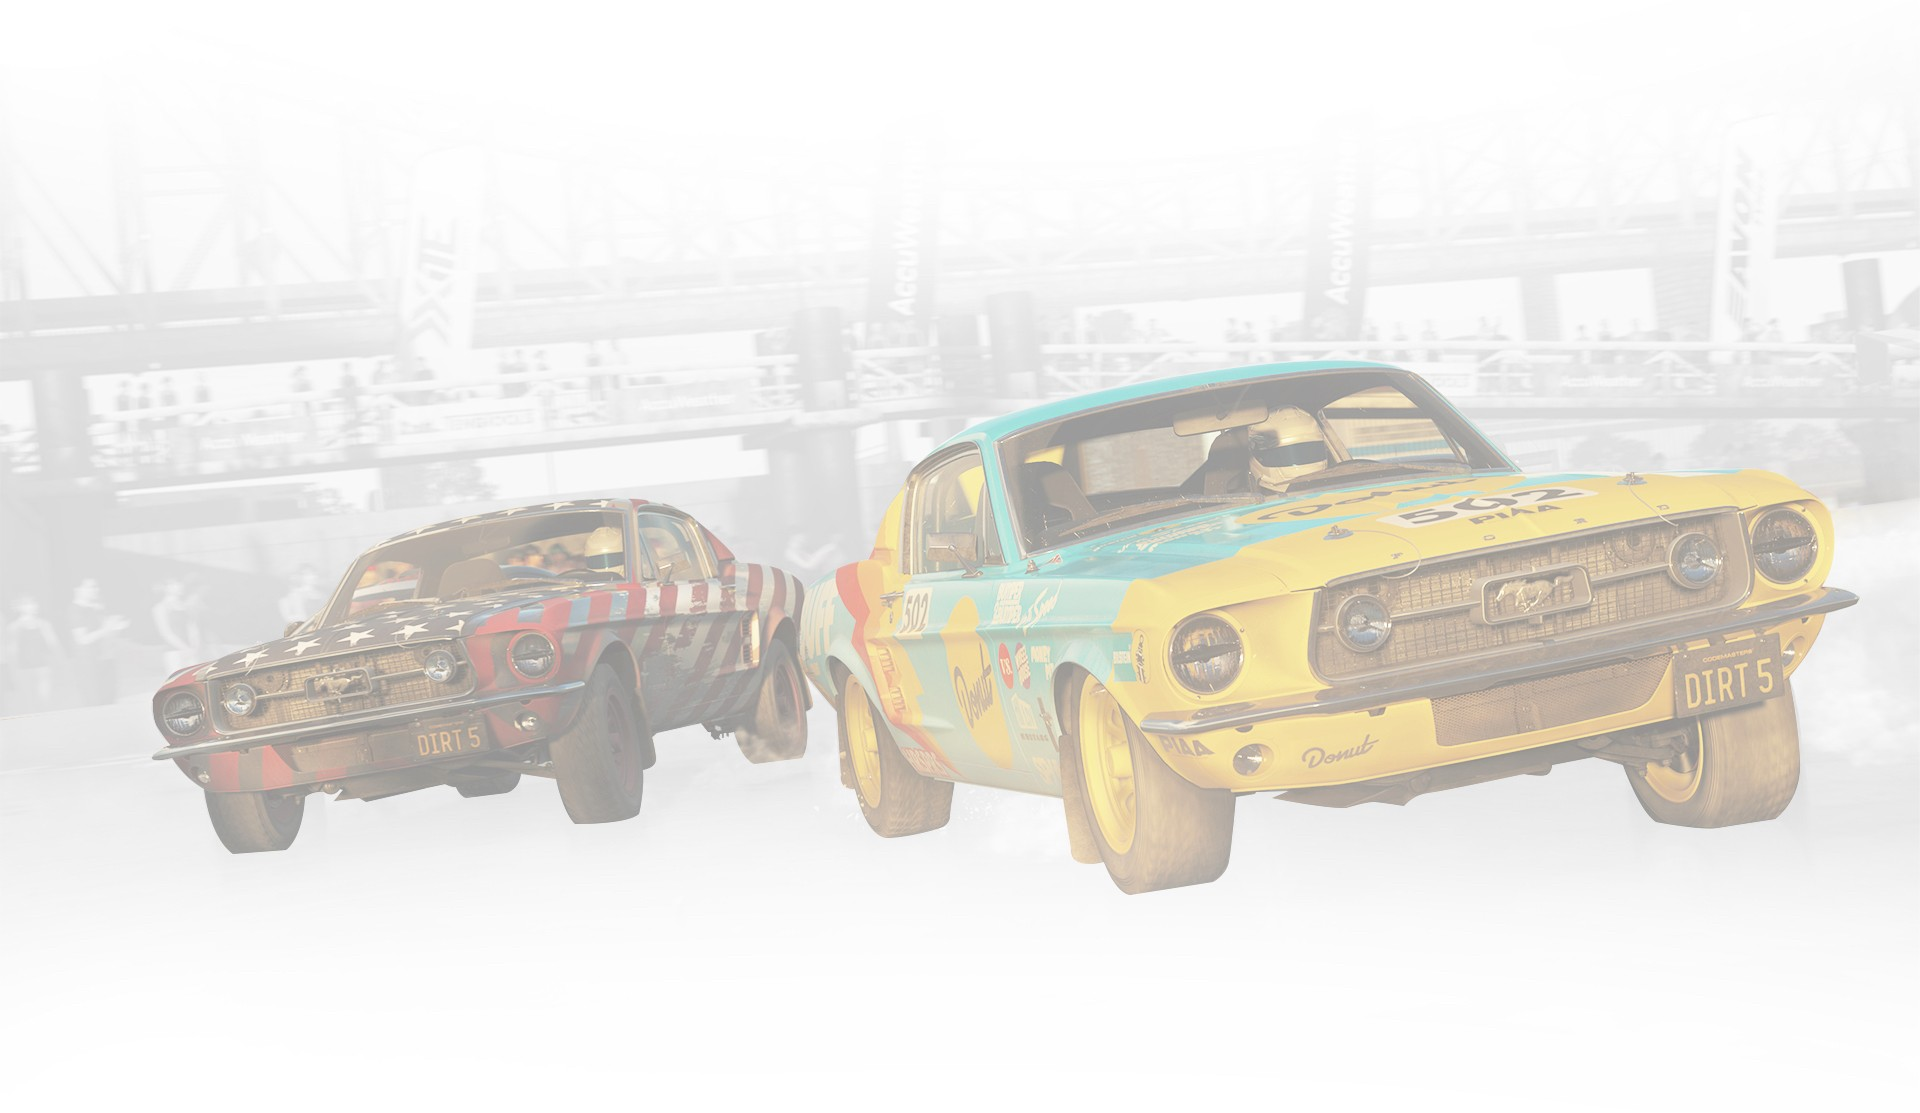 Dirt 5. Two Ford Mustangs race under an overpass.